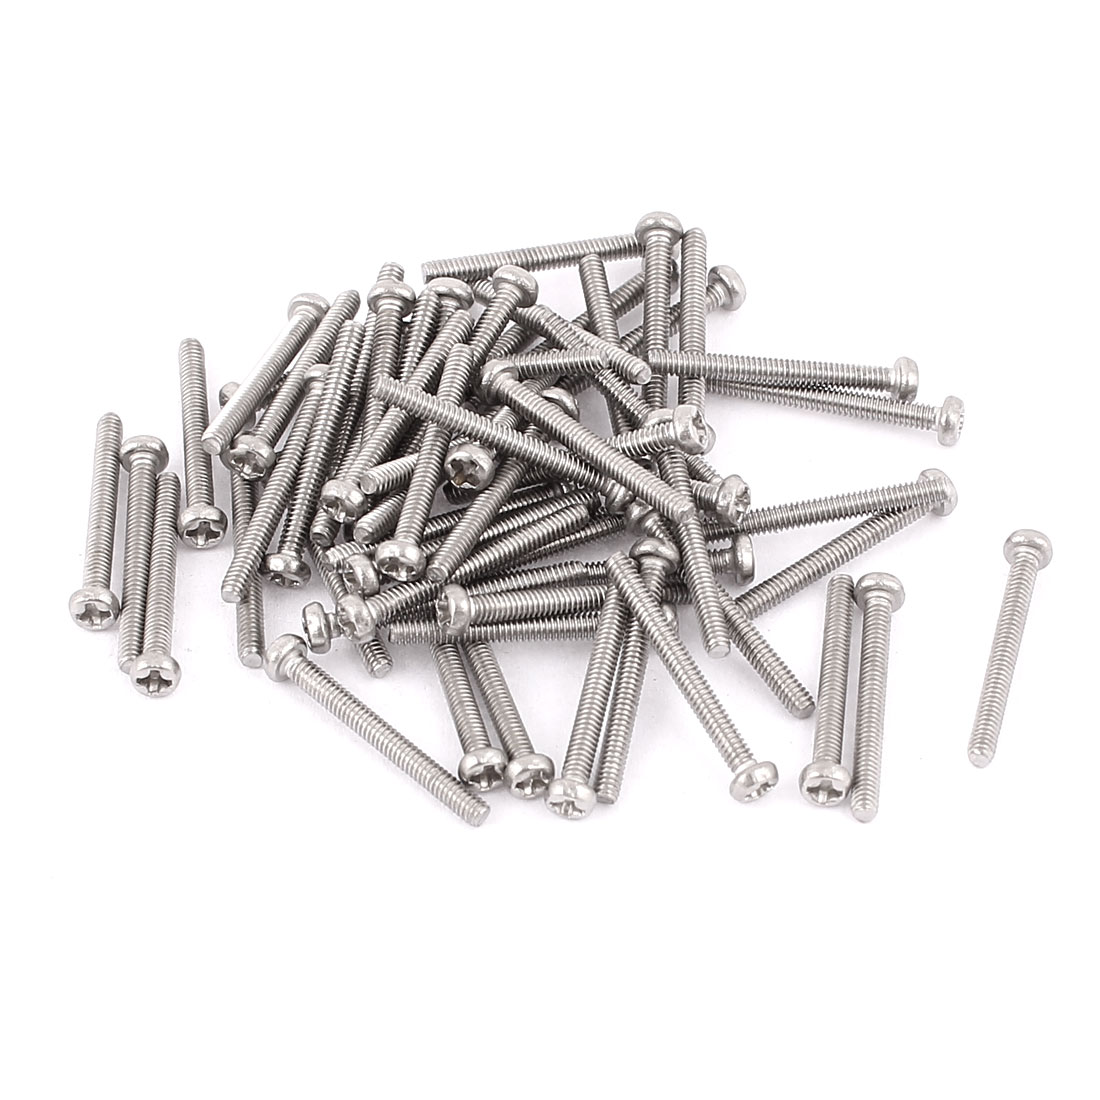 M2 x 18mm 304 Stainless Steel Crosshead Phillips Round Head Screws Bolt 60pcs